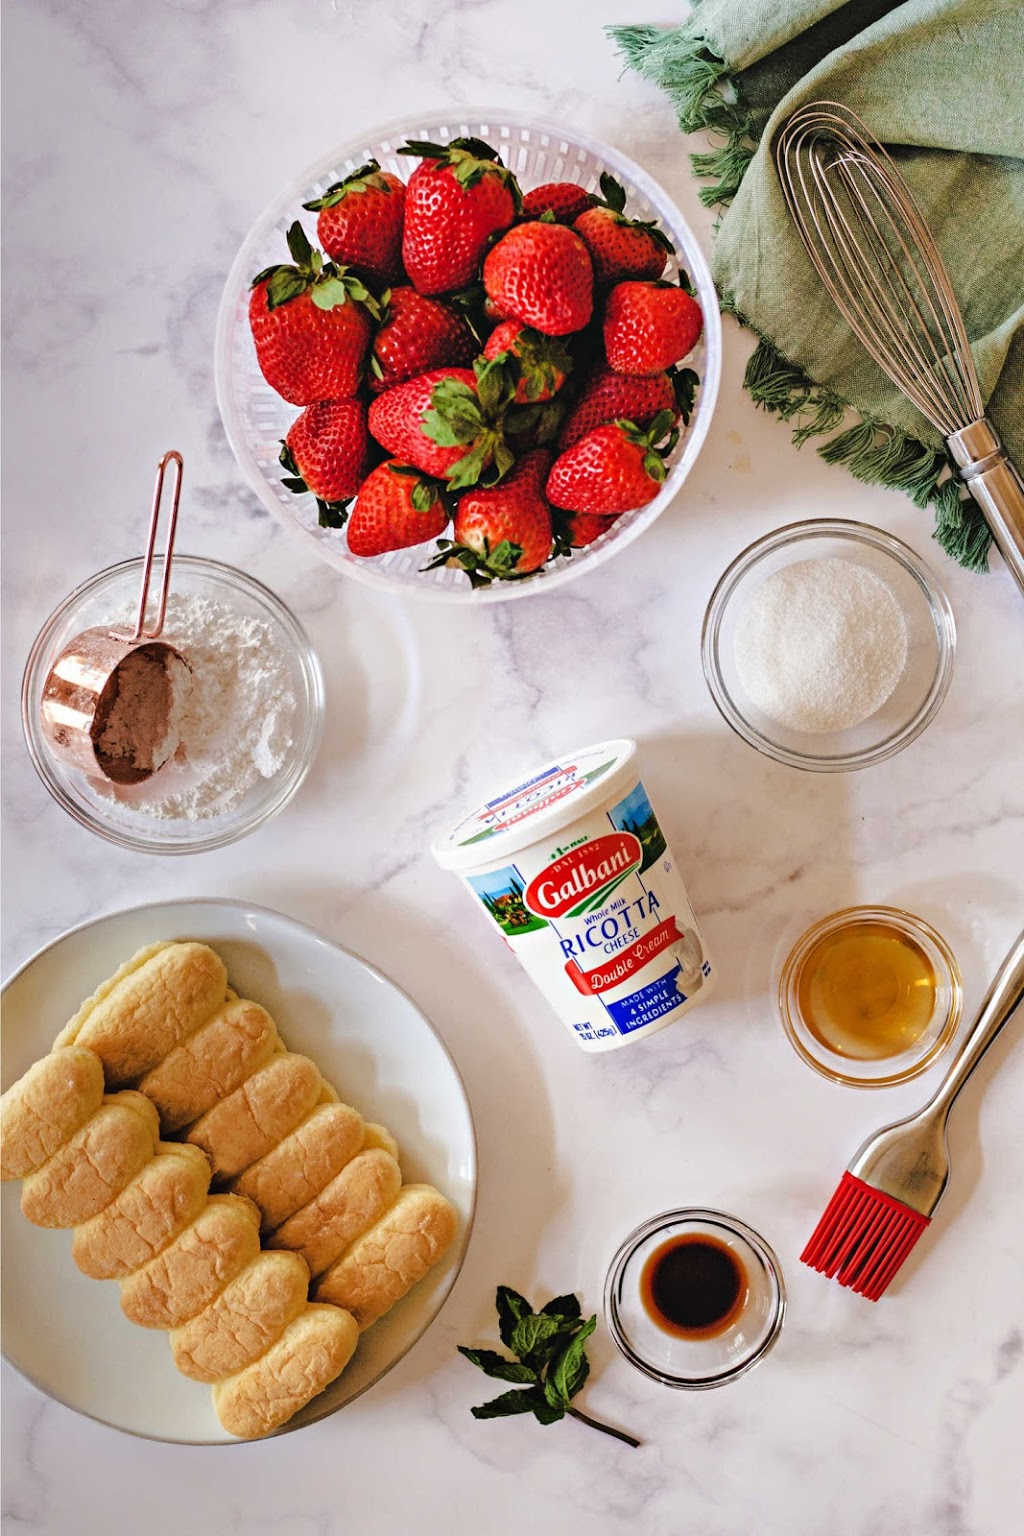 ingredients for making strawberry ricotta trifle.